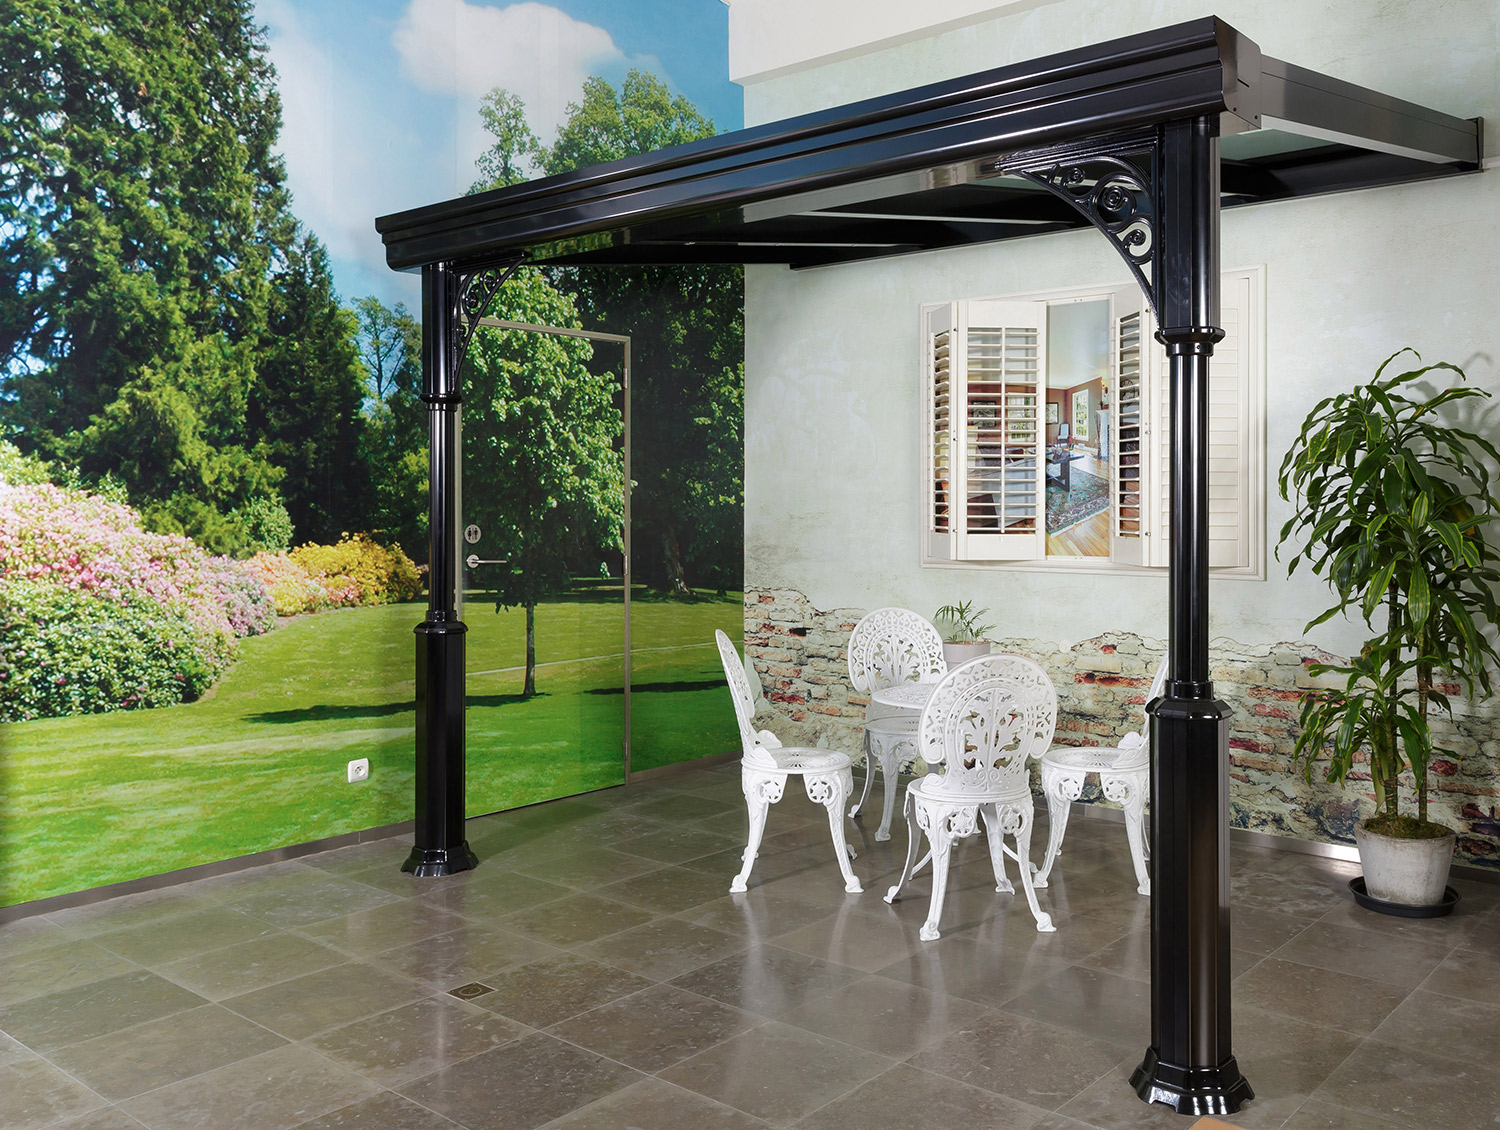 photos de r alisations de pergolas et jardins d 39 hiver. Black Bedroom Furniture Sets. Home Design Ideas